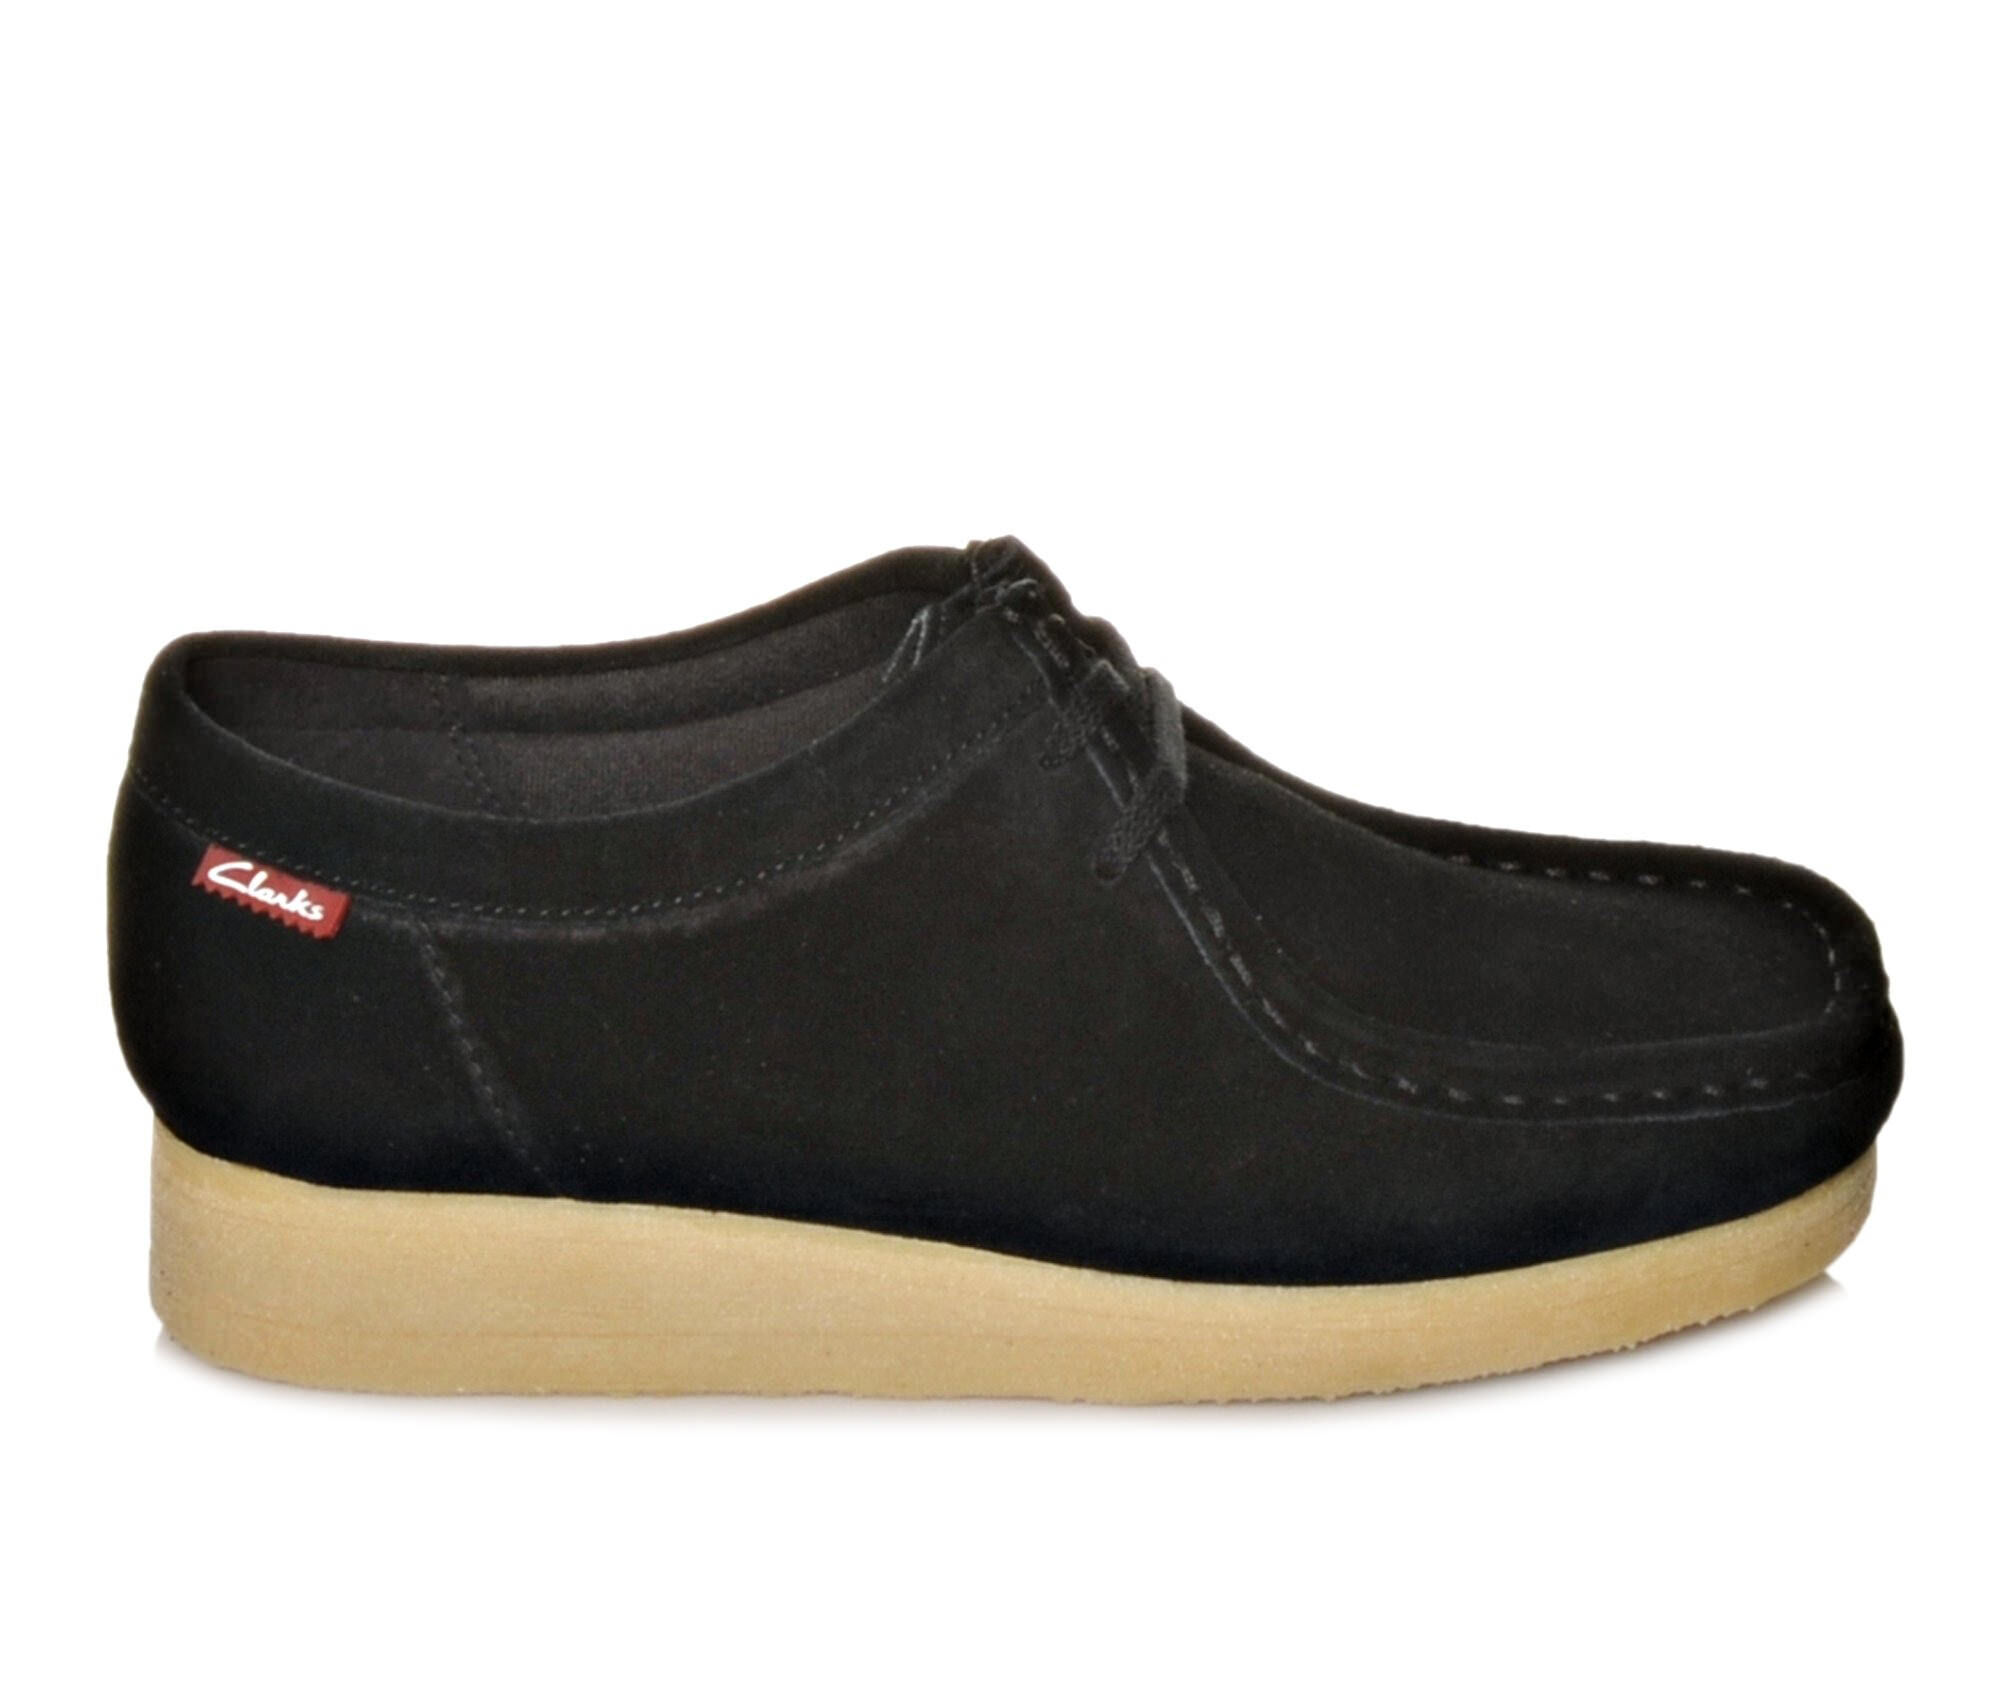 big sale online Women's Clarks Padmore Casual Shoes good selling cheap price yuhncSnr